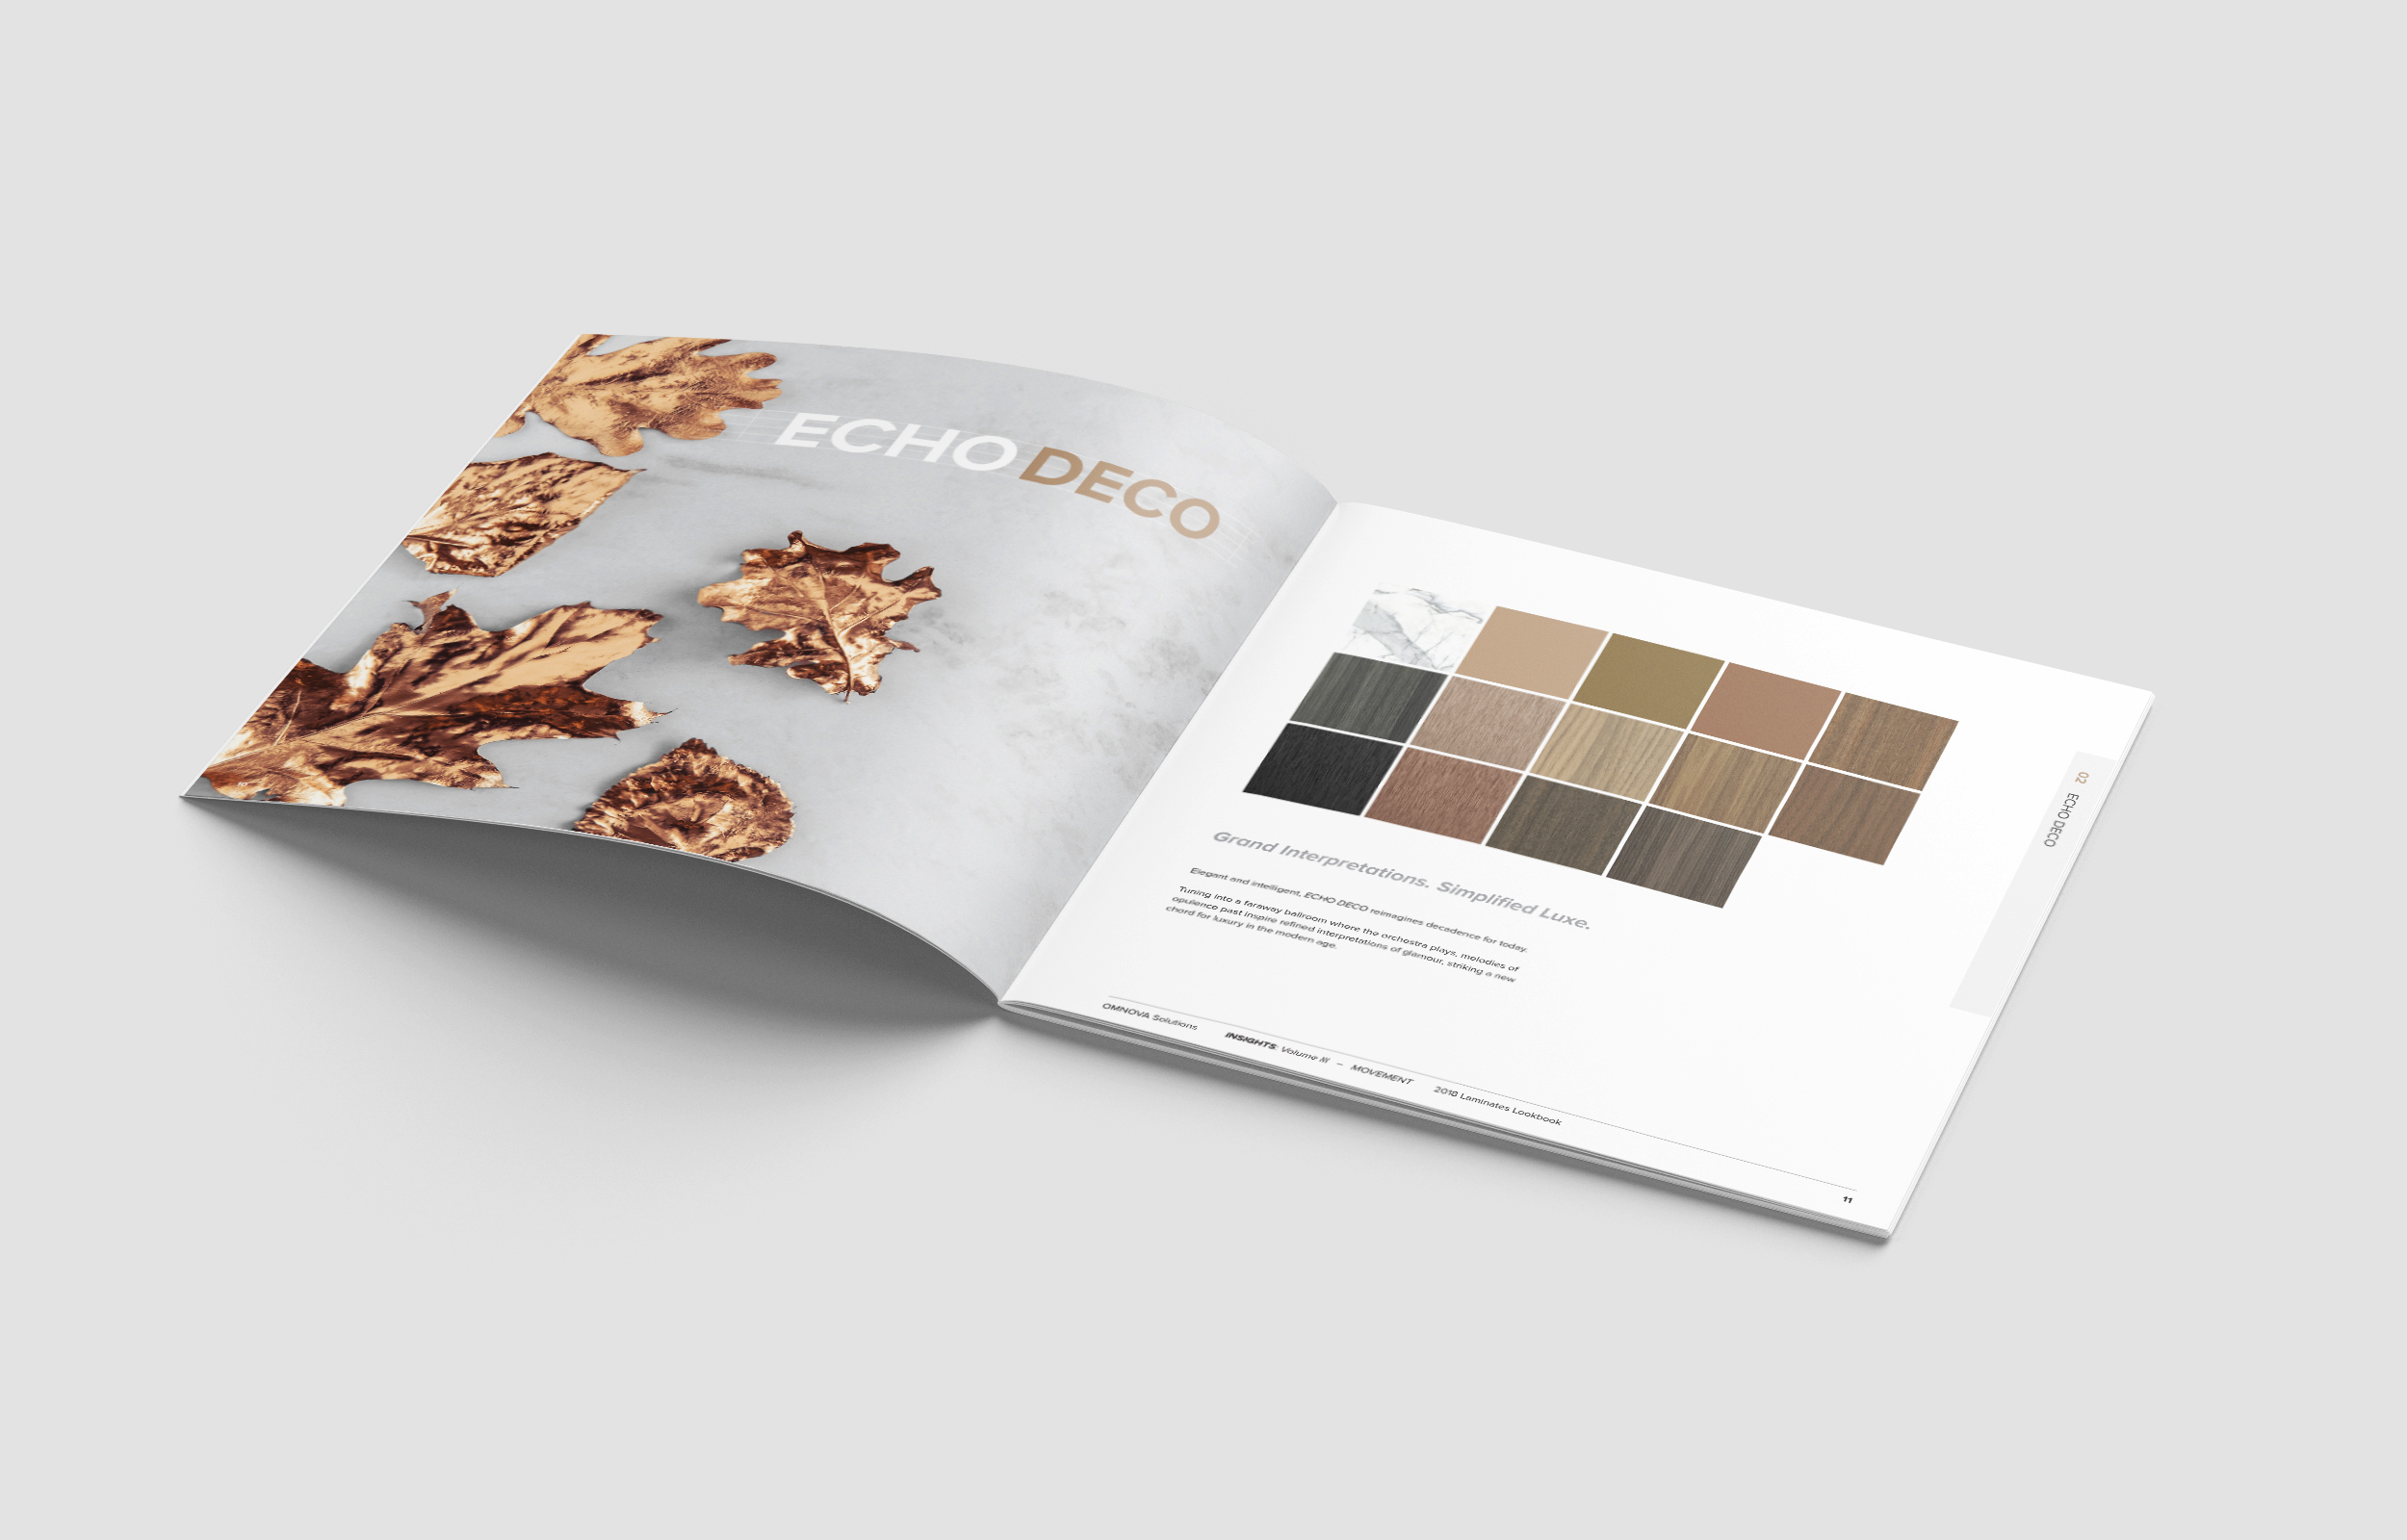 Click the image to see the echo collection.